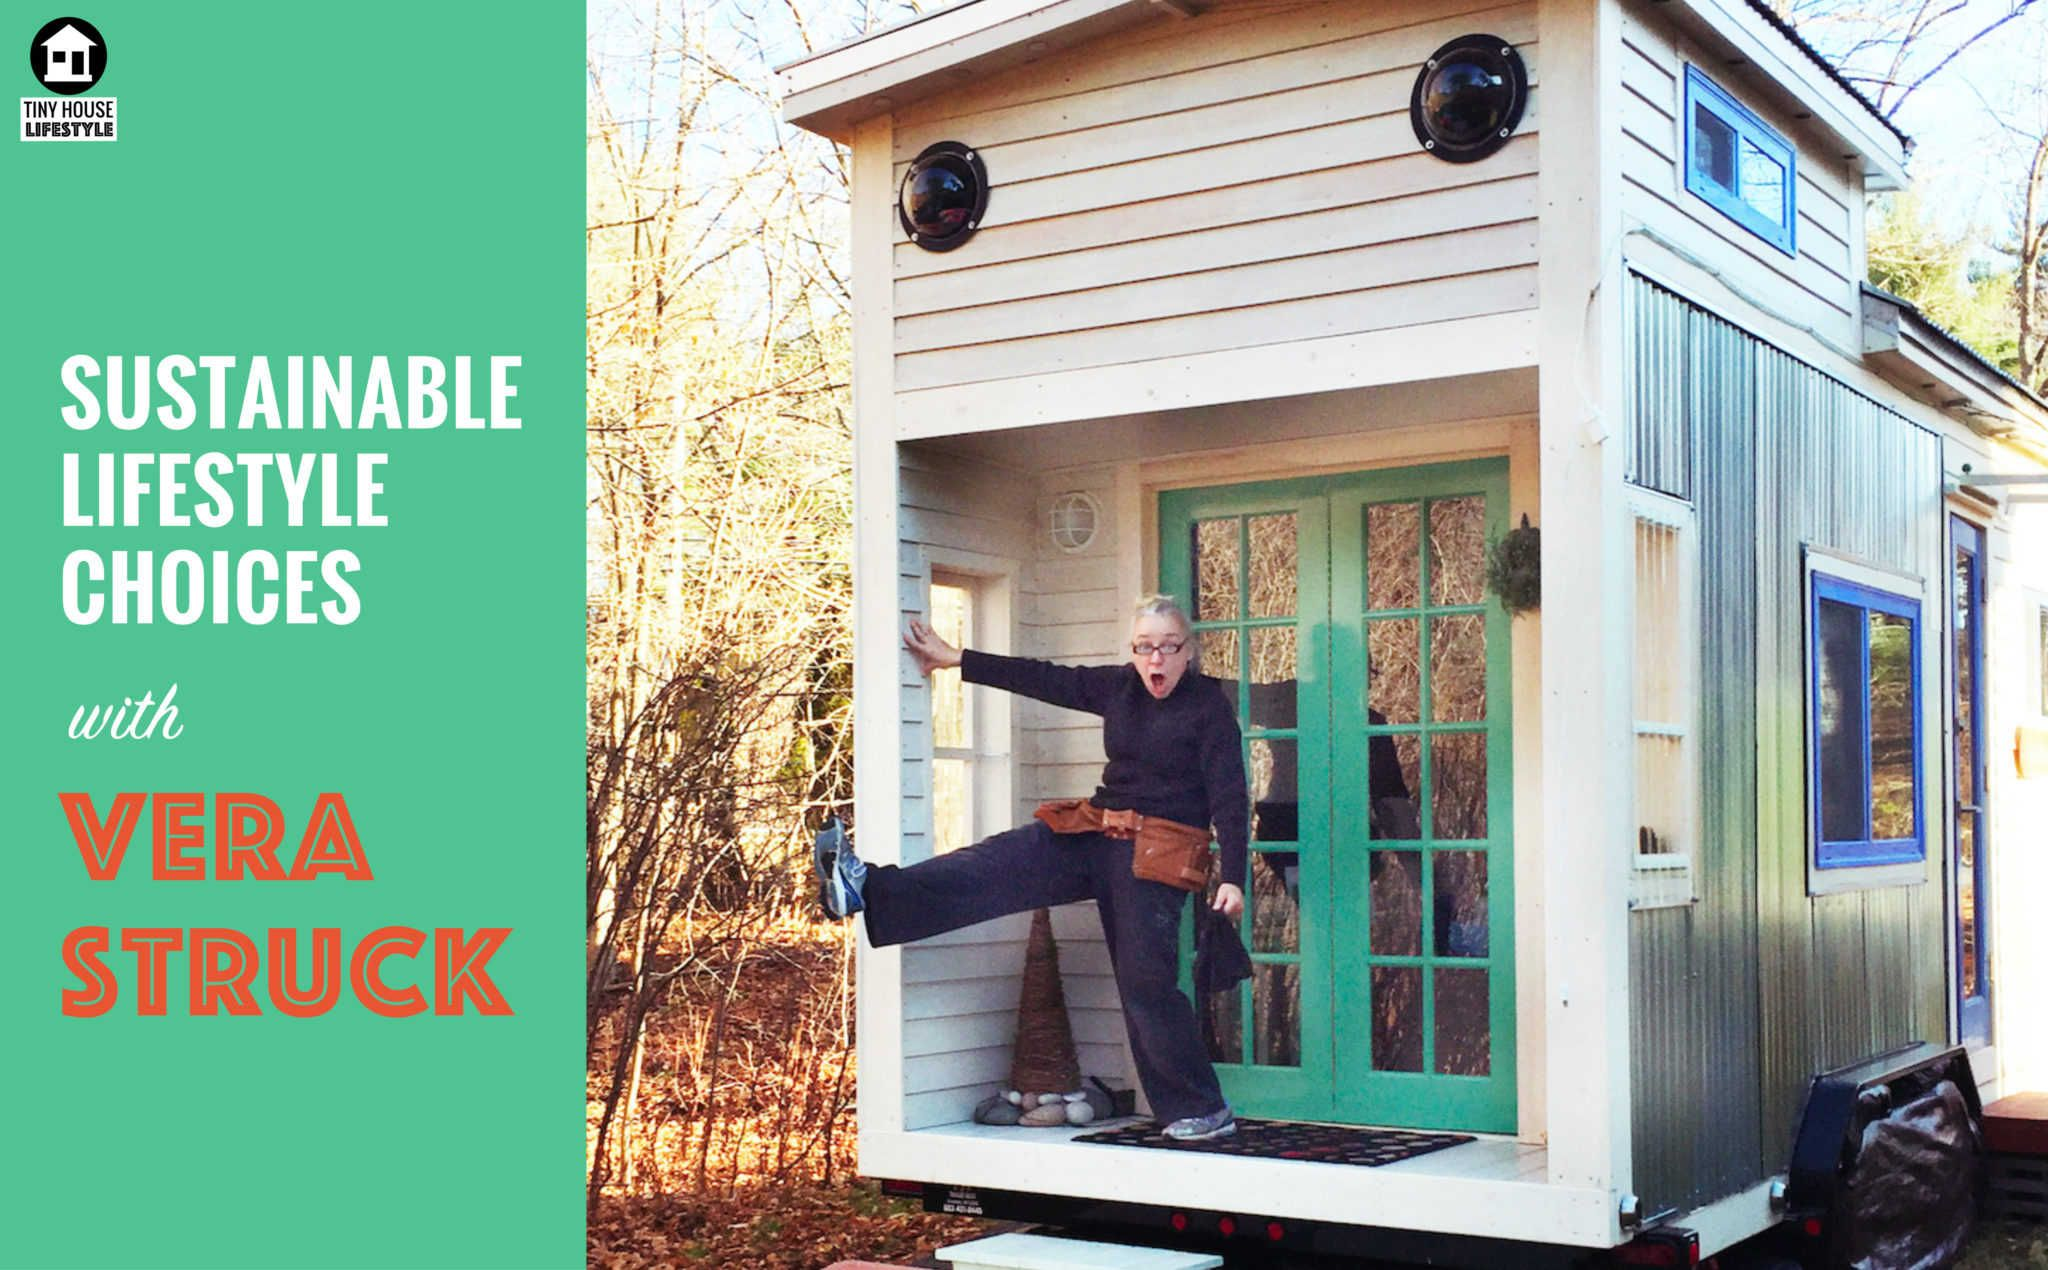 How To Build A Tiny House That Breathes Sustainable Lifestyle